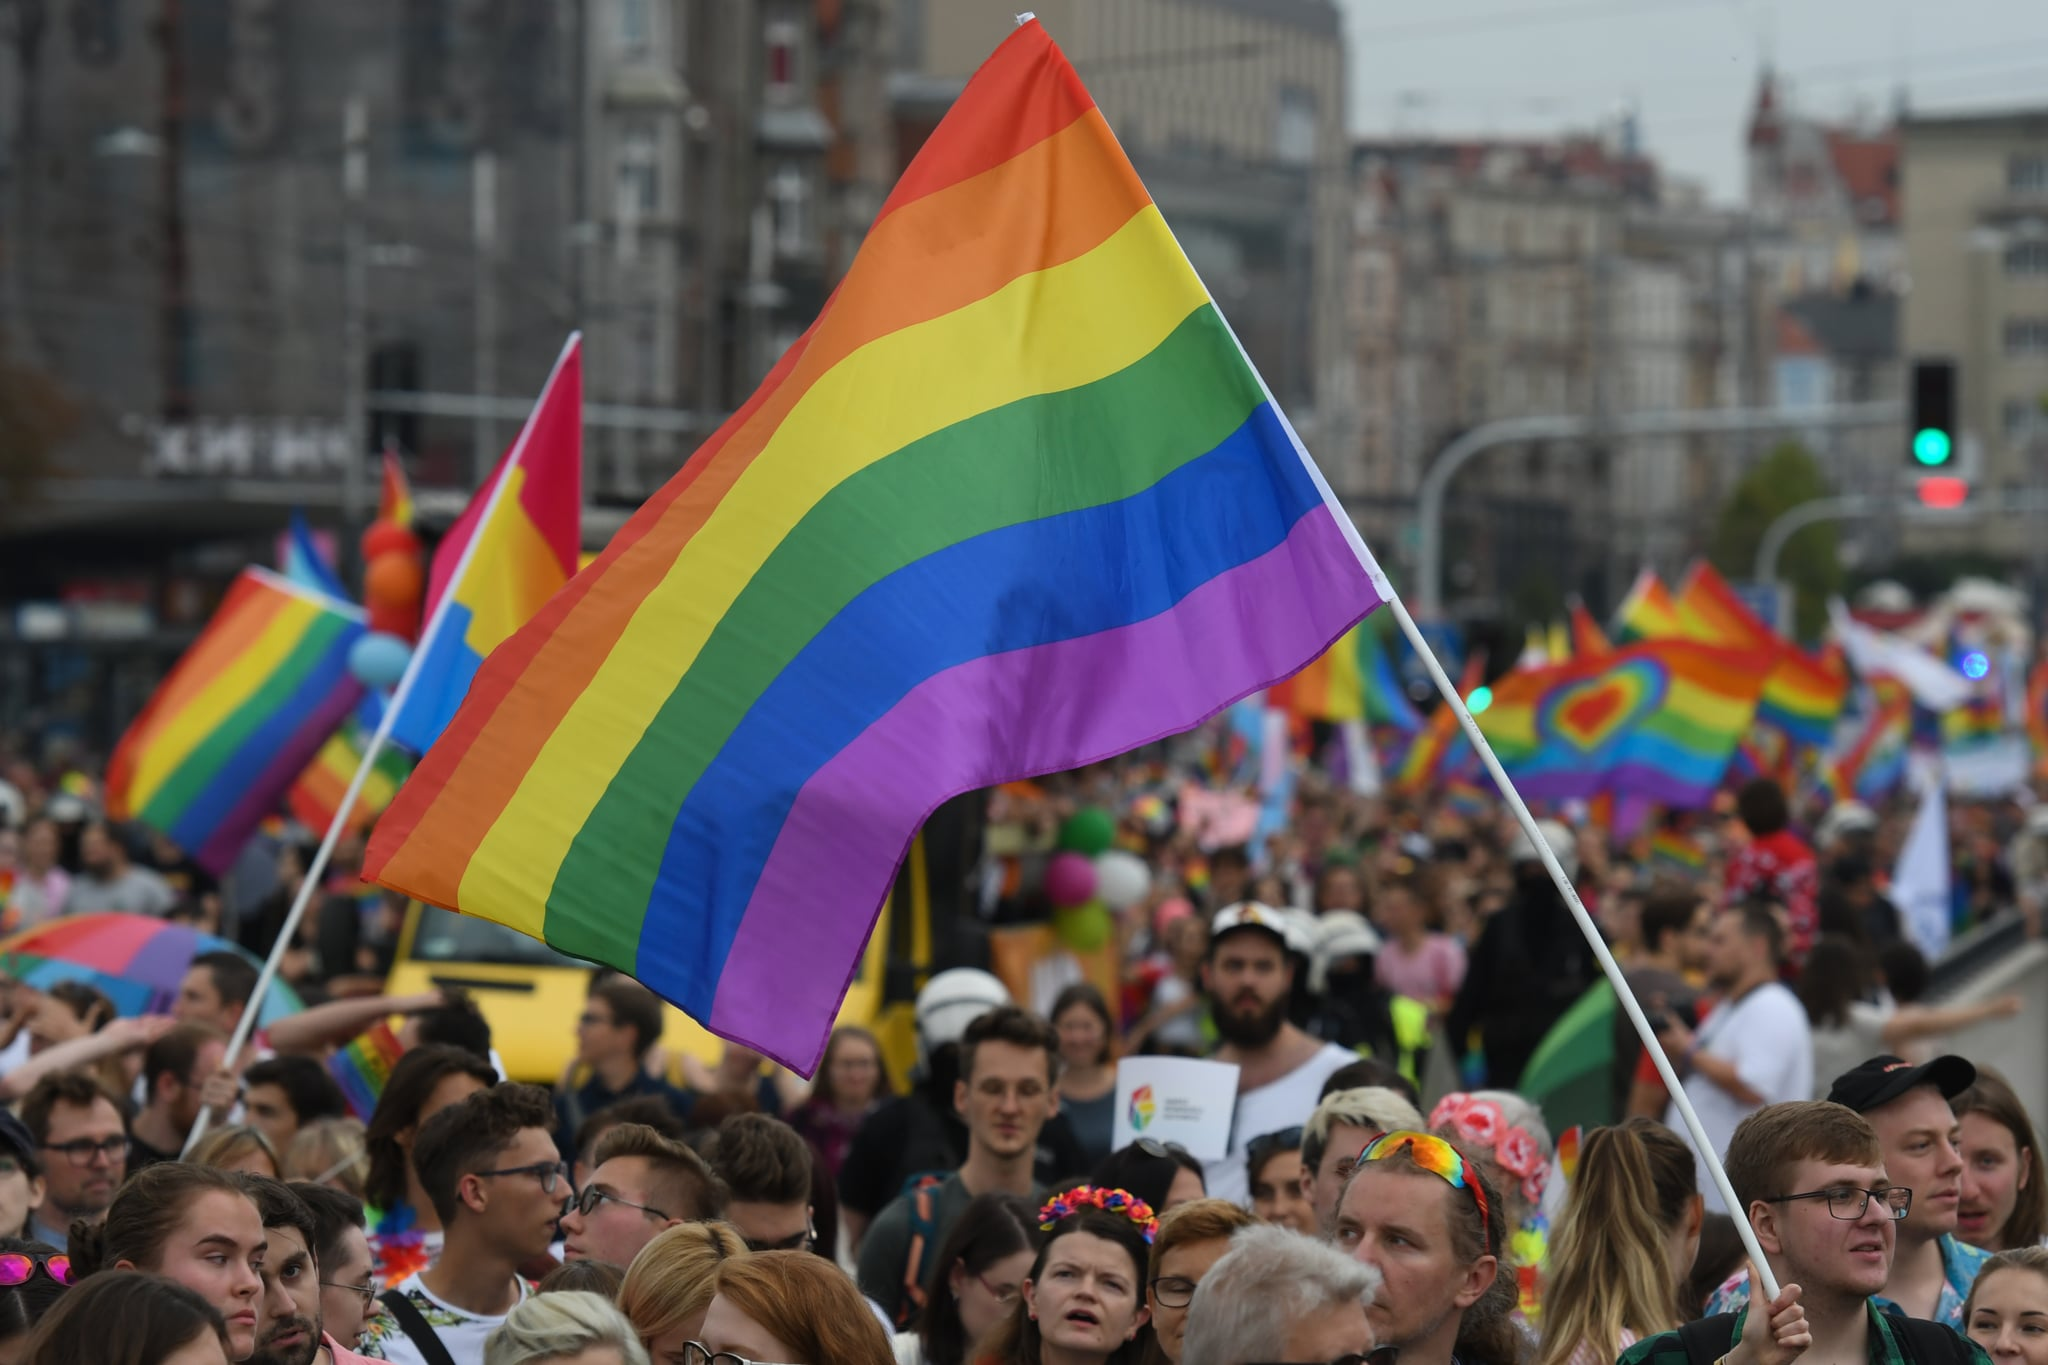 People march through Katowice city centre during the Equality March 2019.On Saturday, September 7, 2019, in Katowice, Poland. (Photo by Artur Widak/NurPhoto via Getty Images)